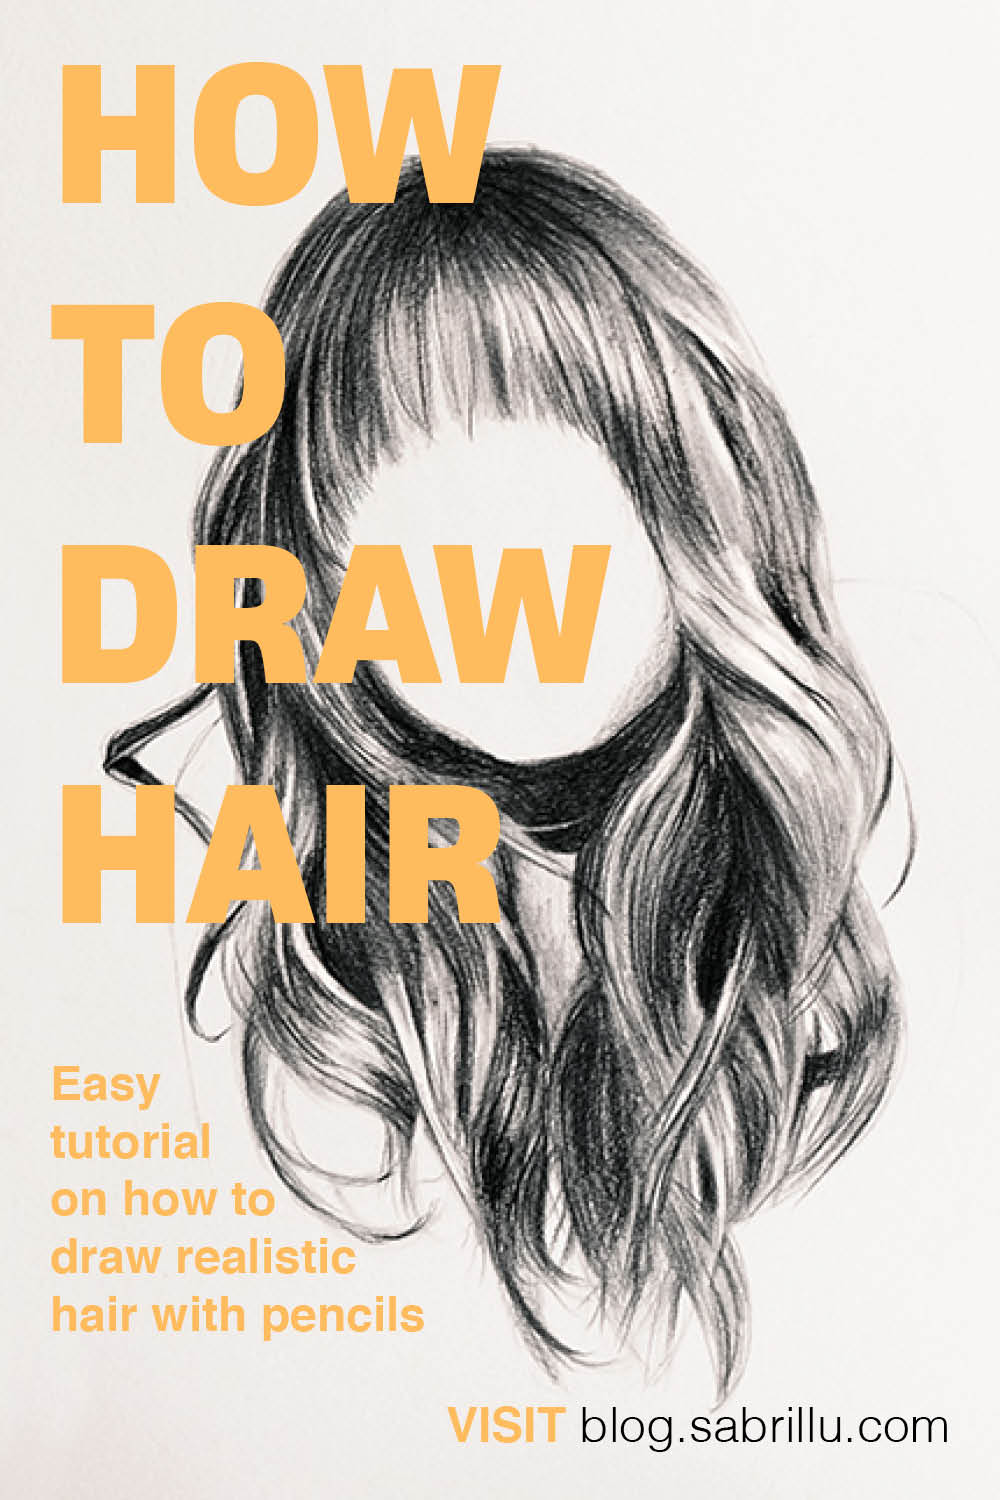 Easy tutorial on how to draw realistic hair with pencils